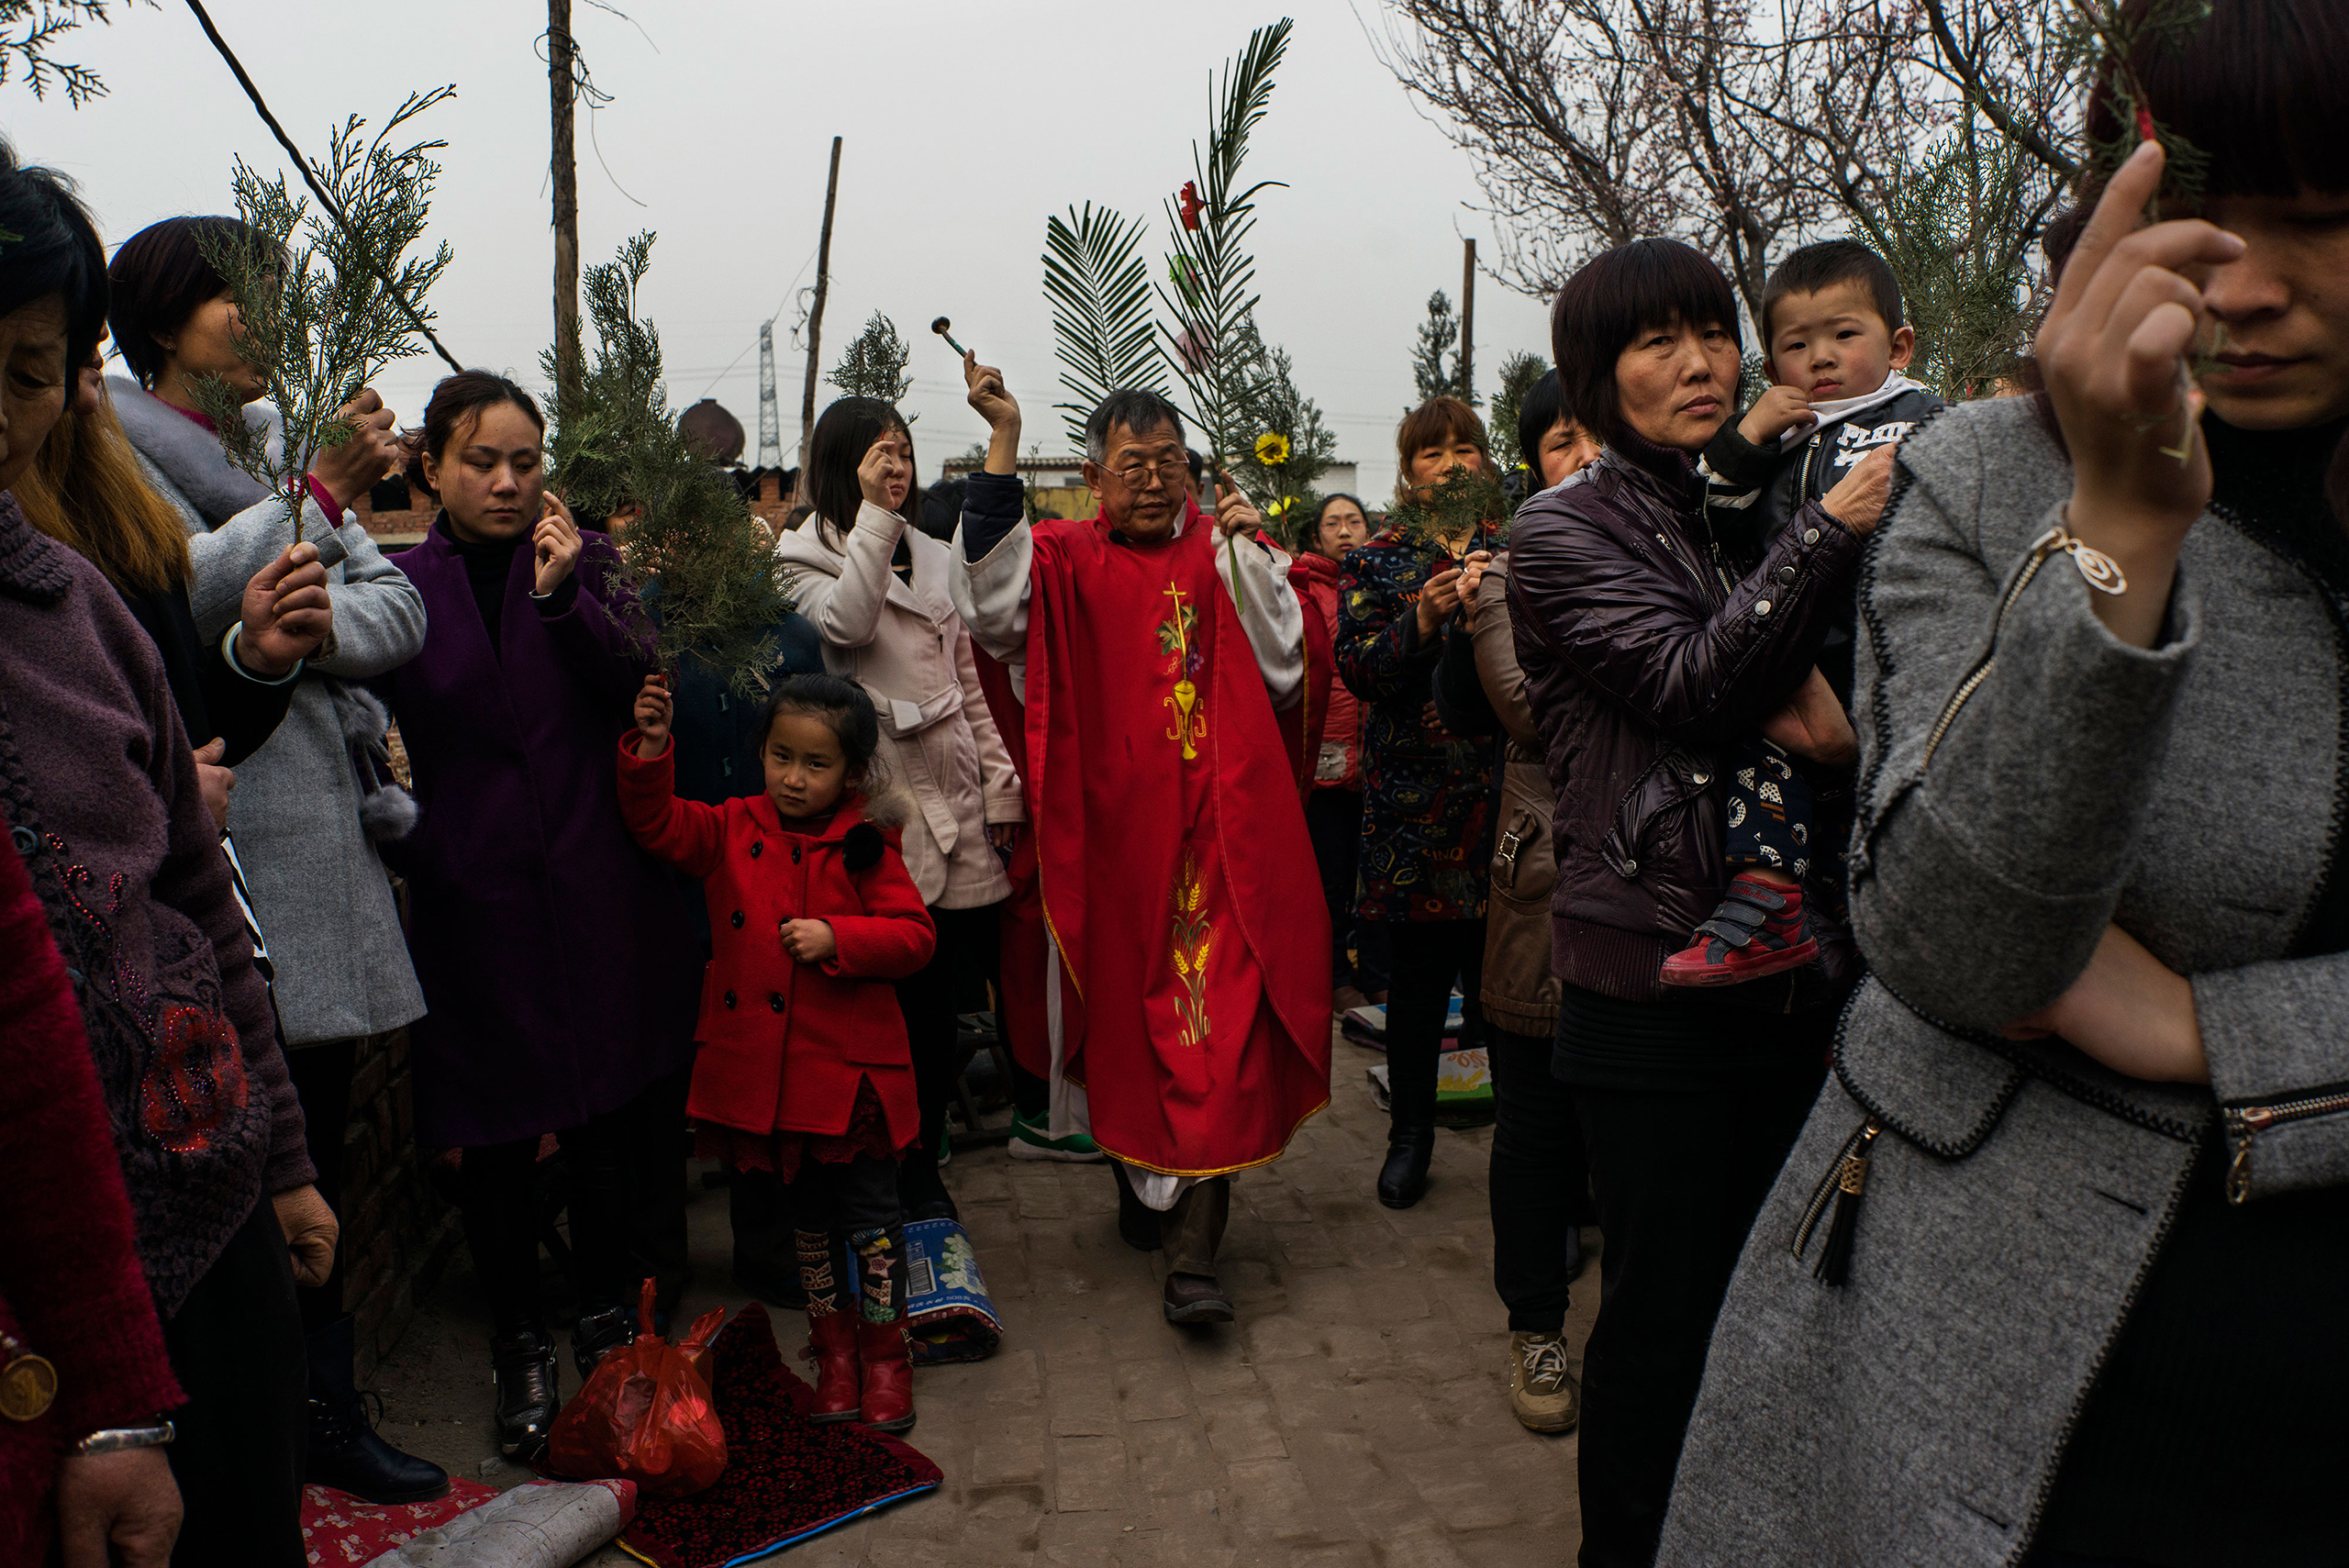 Dissident Catholic Priest Dong Baolu leads a procession through the congregation at an underground Palm Sunday service in the yard of a house in Youtong village, Shijiazhuang, China, March 20, 2016.